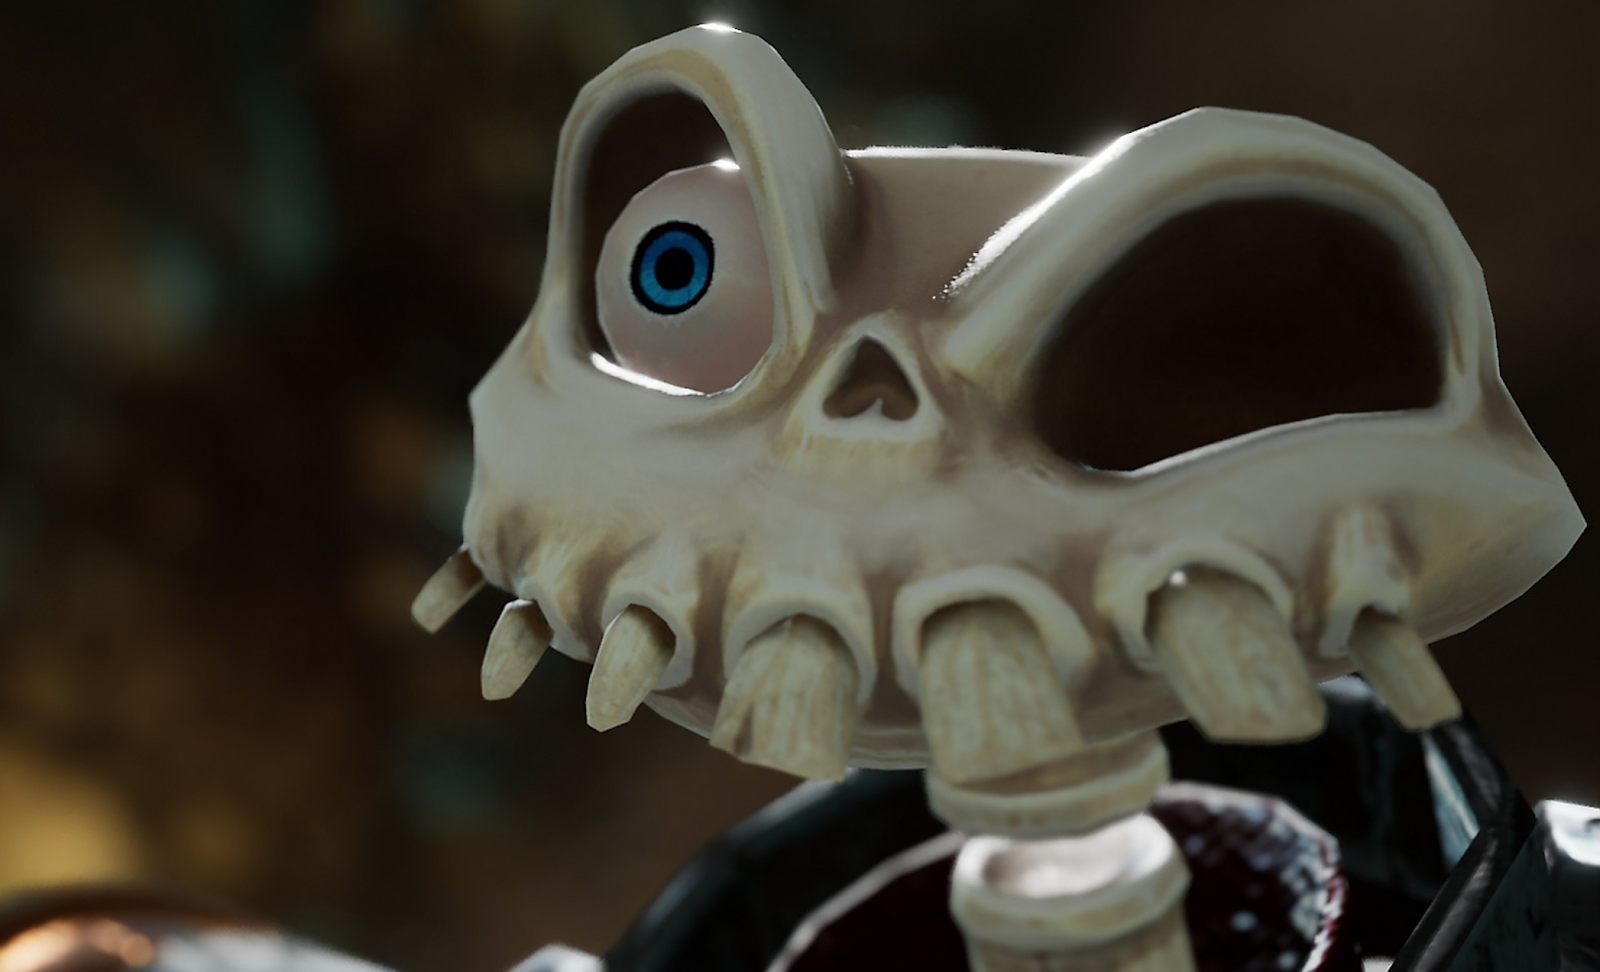 MediEvil's Demo Has Some Nostalgia Value, But That's About It